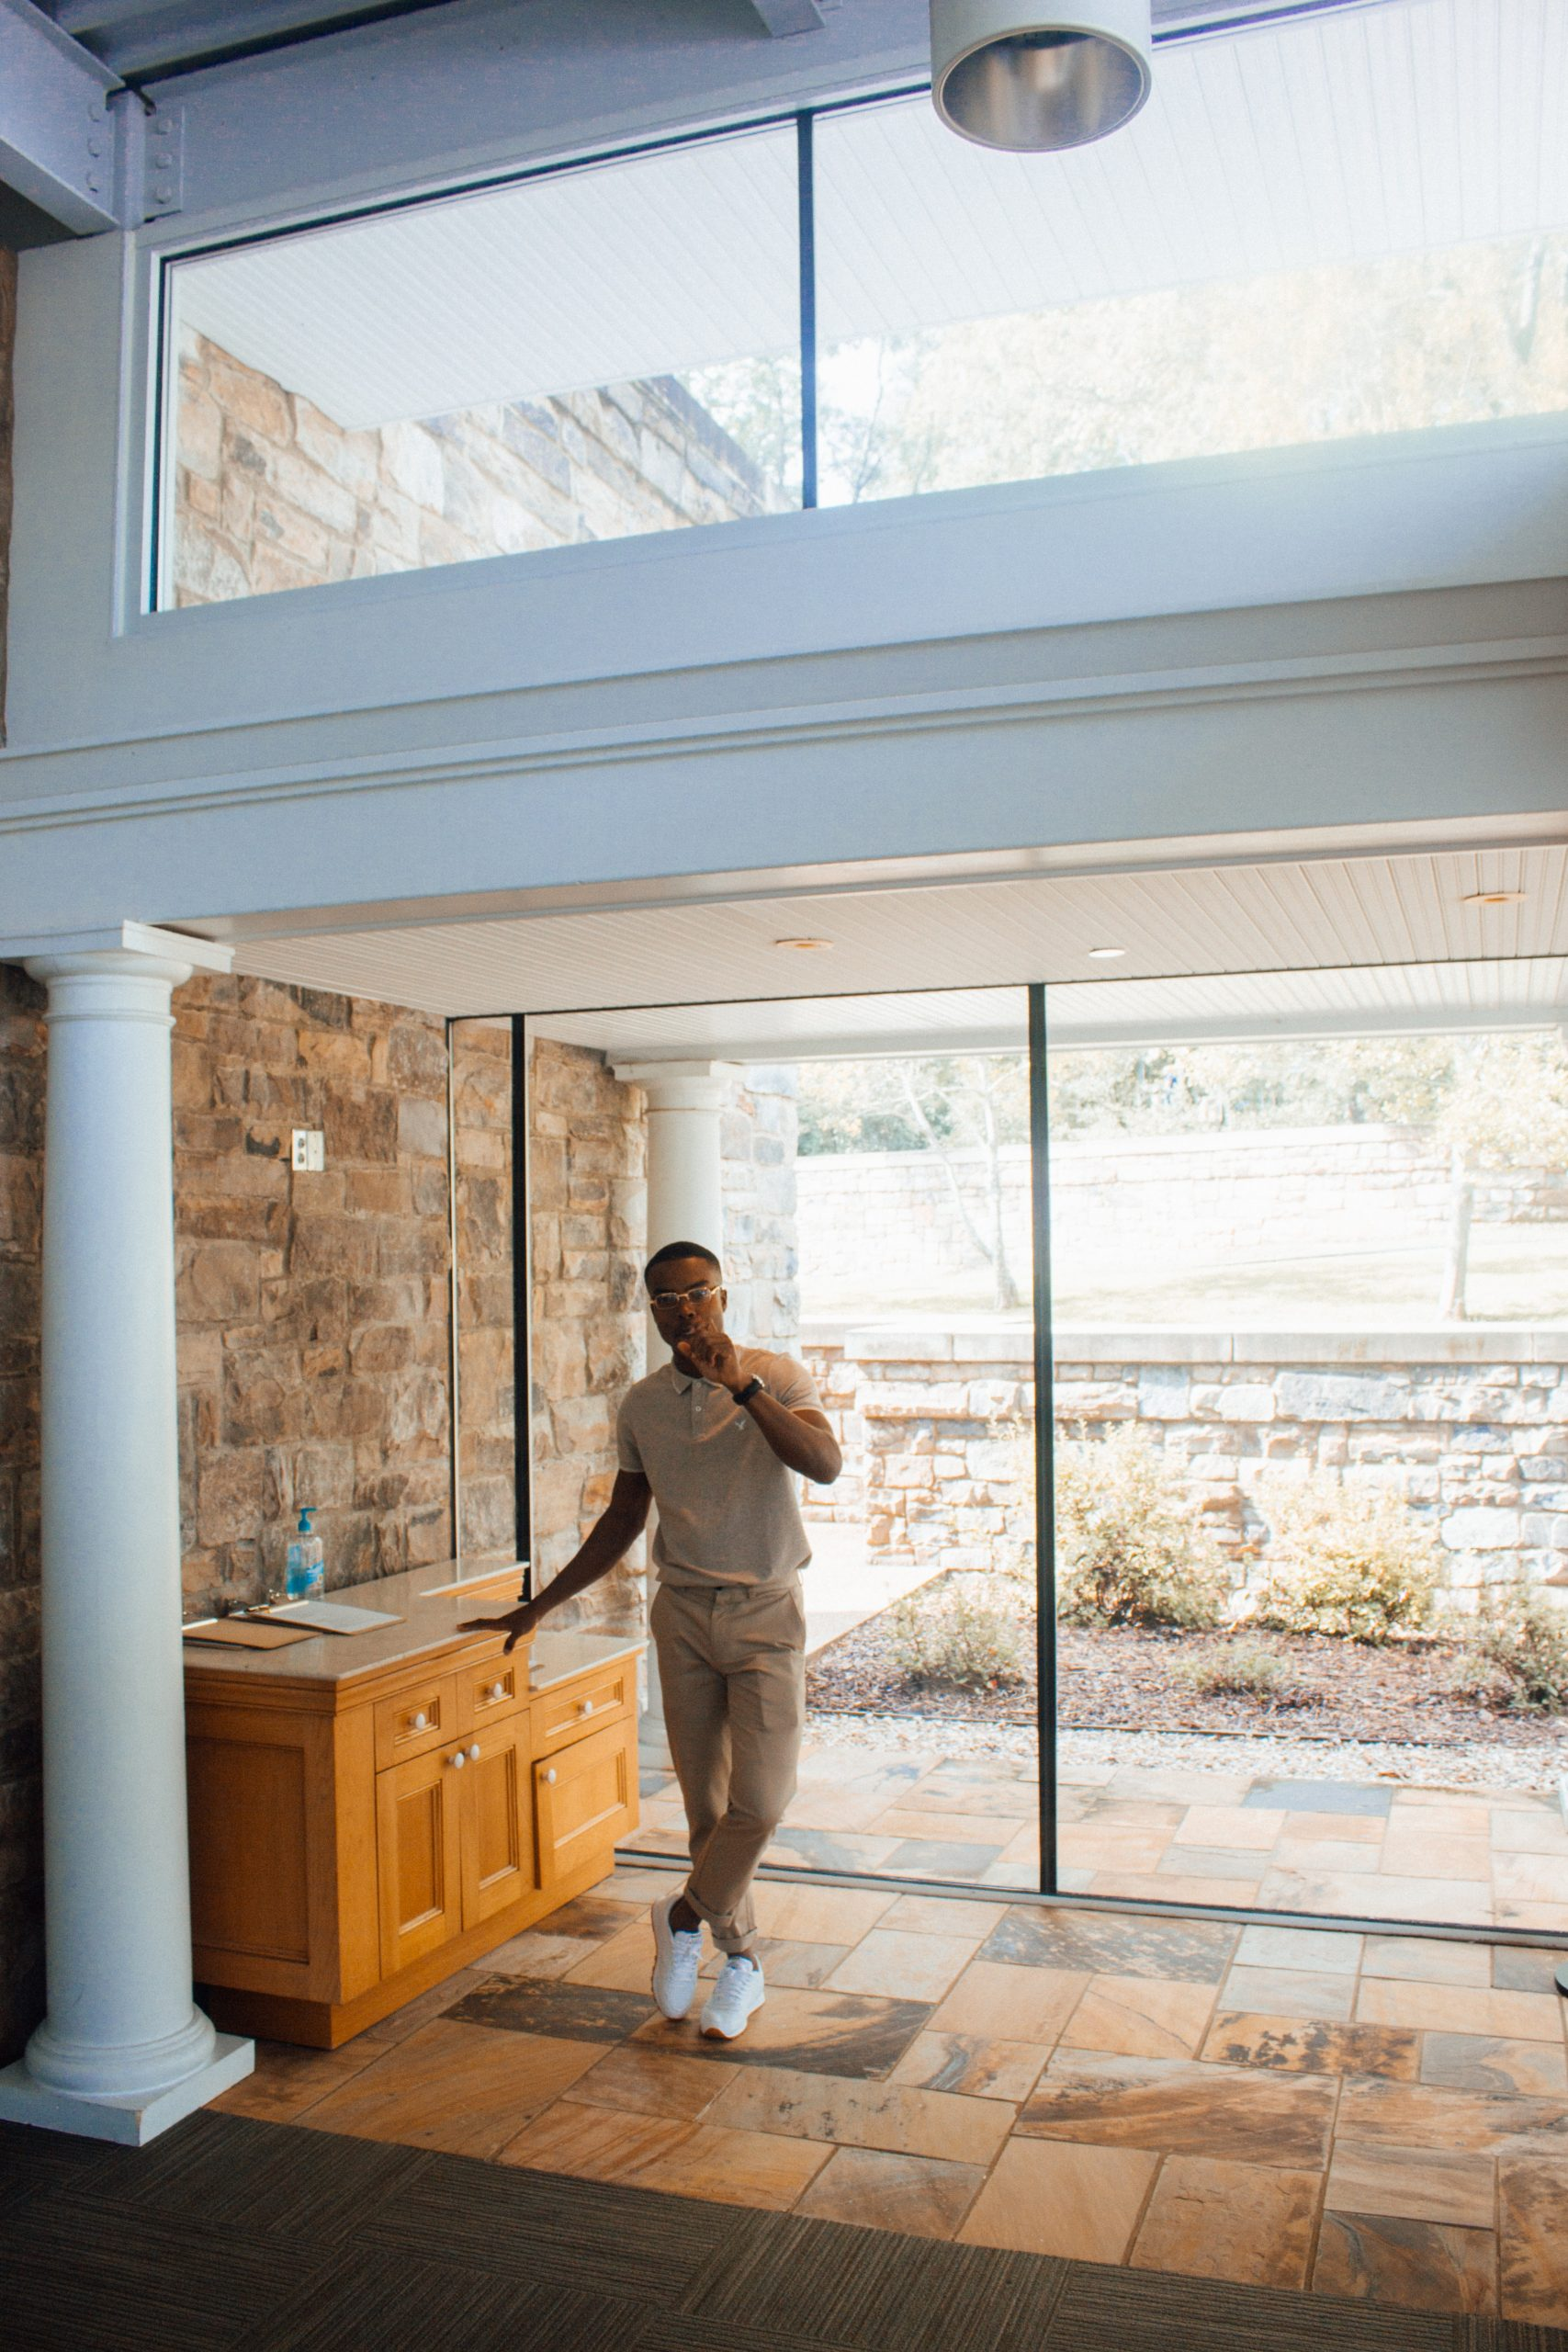 Sliding Doors to Add Space to Small Places